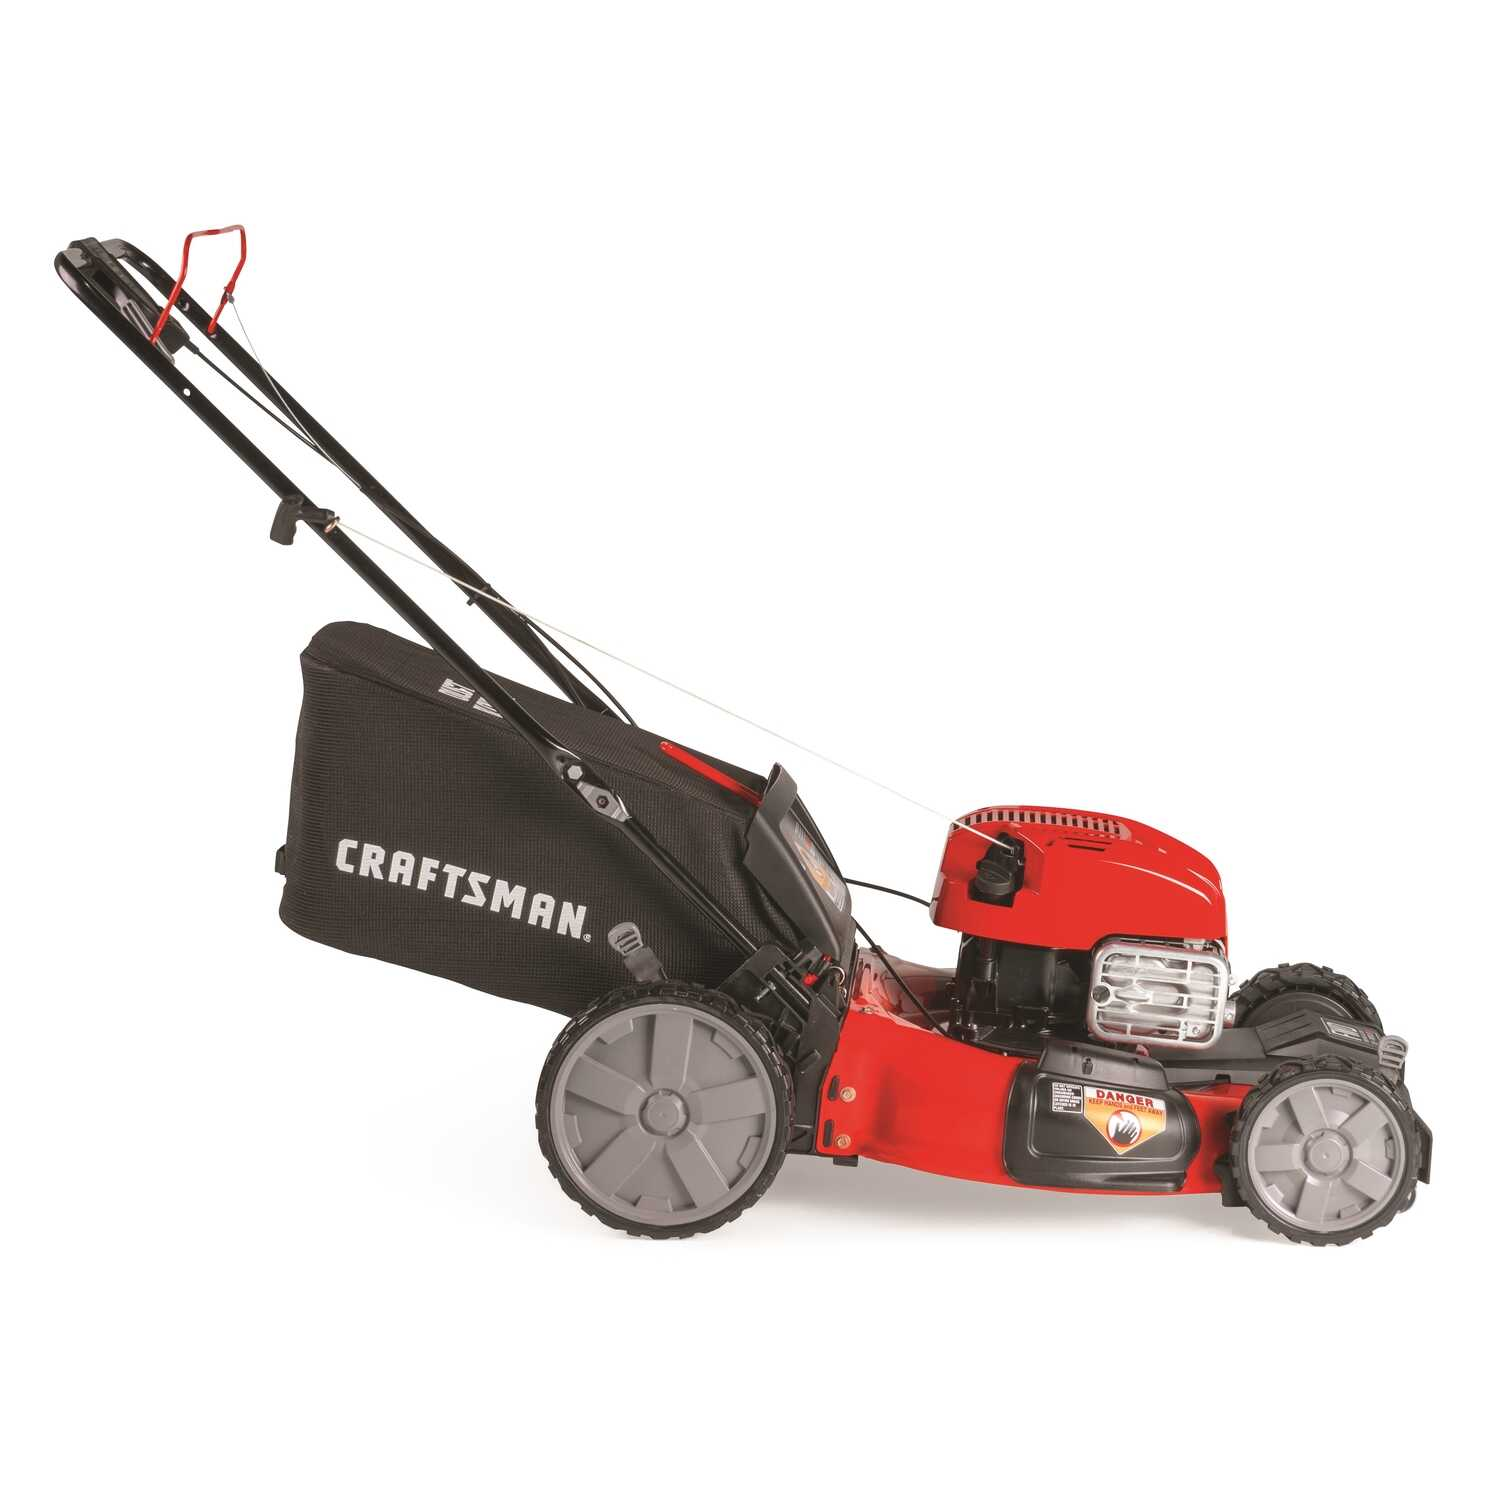 Craftsman  163 cc Self-Propelled  Lawn Mower  12AVB2R3791